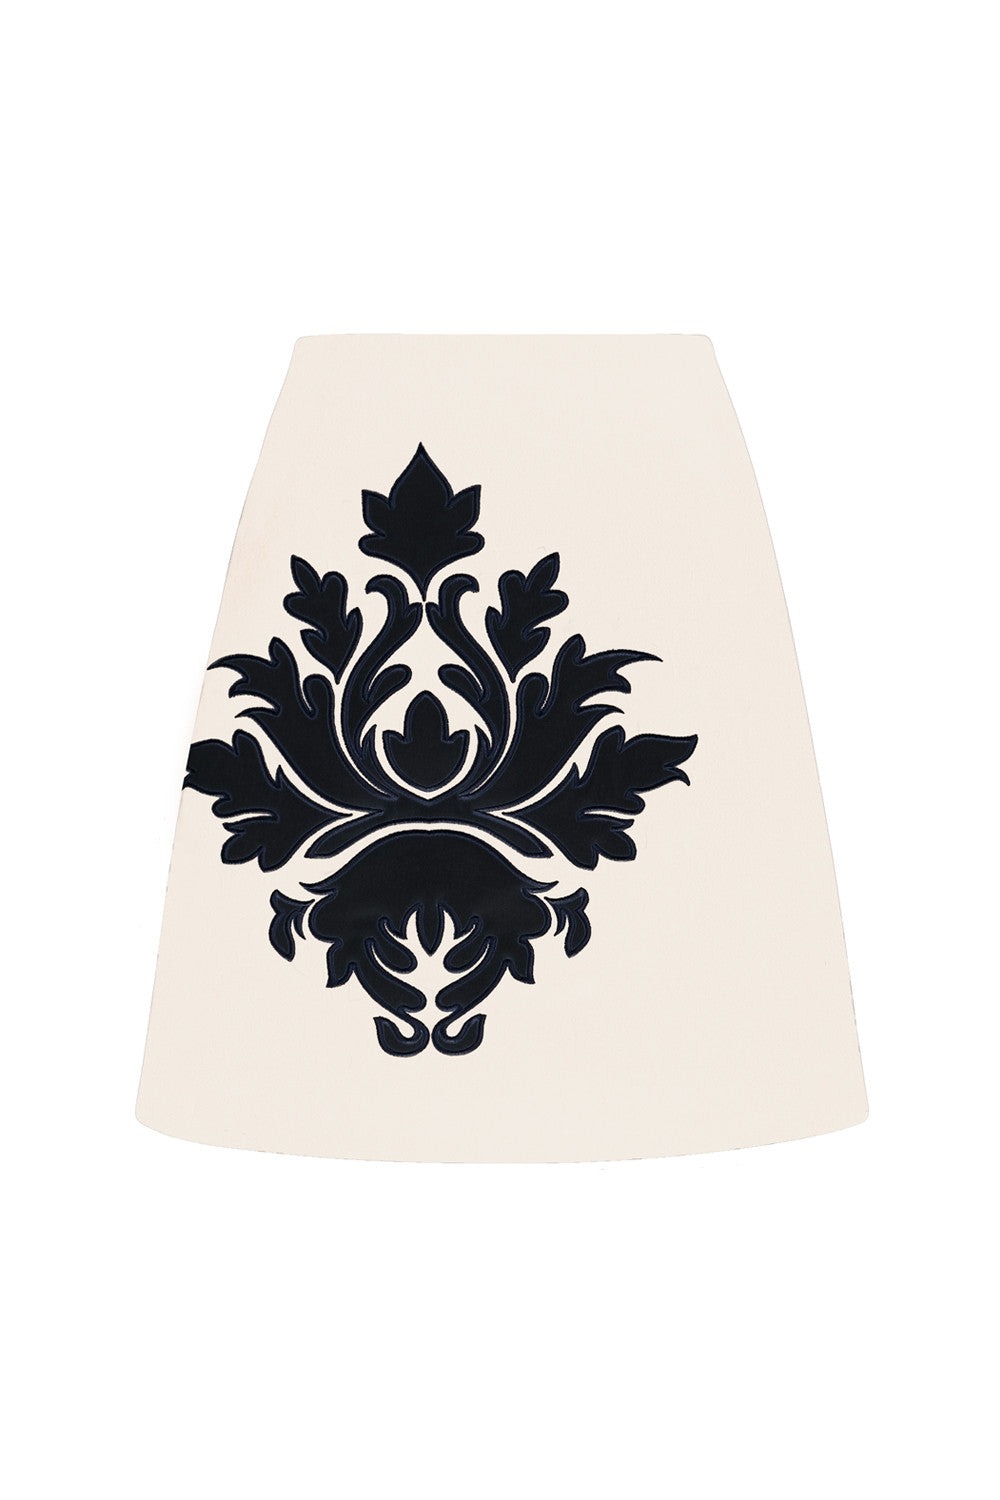 Ellen skirt - Womenswear - Madderson London